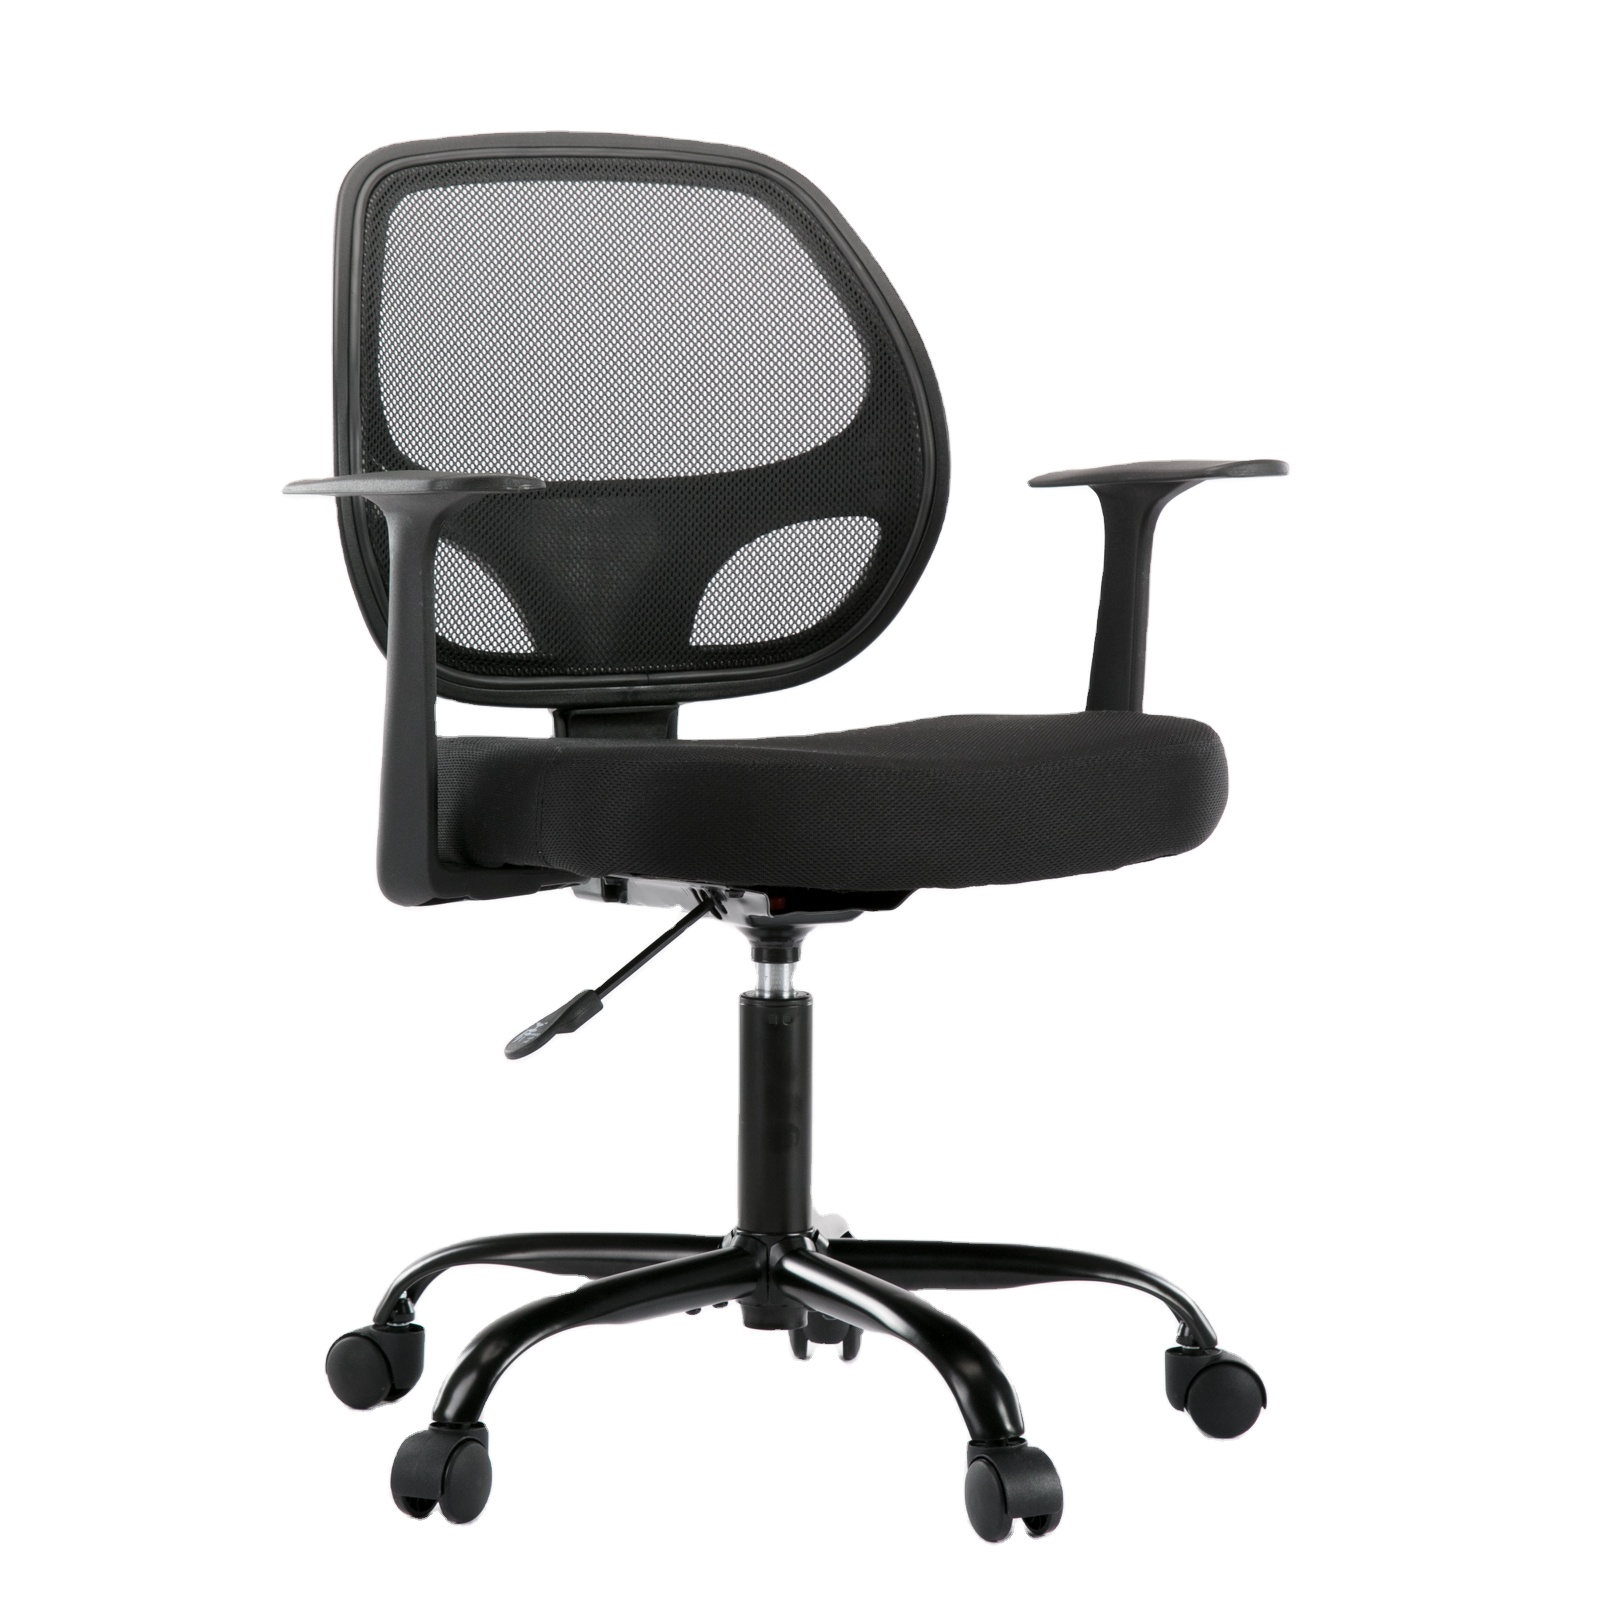 USA STOCK Mid-Back Desk Office Chair Task Chair with Armrests - Full Mesh Swivel Chair